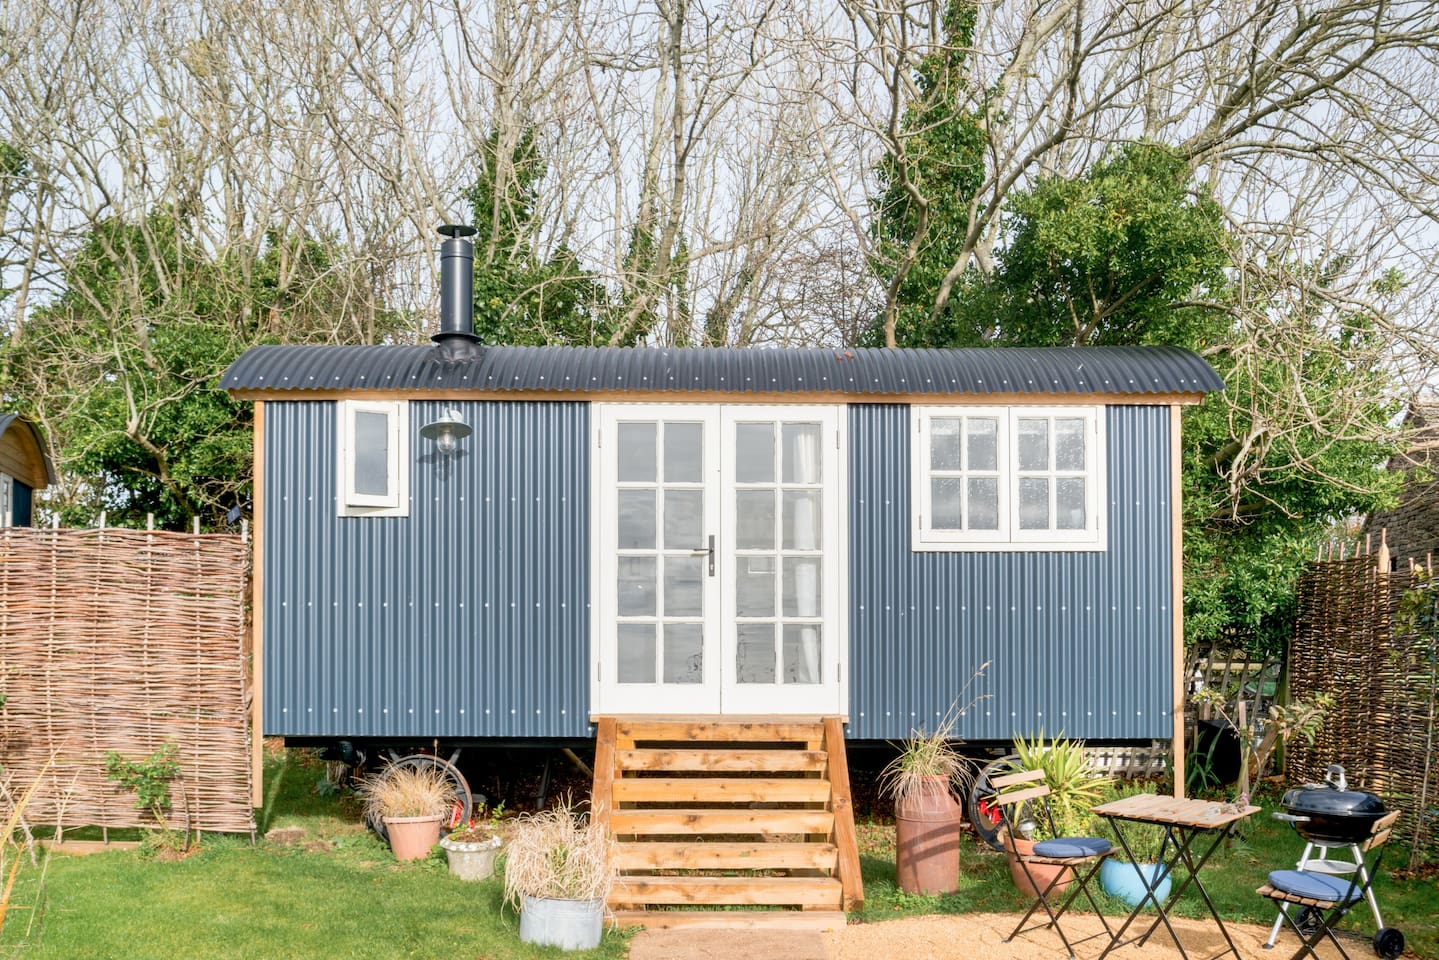 7 of the Most Amazing Dorset Shepherds Hut Stays